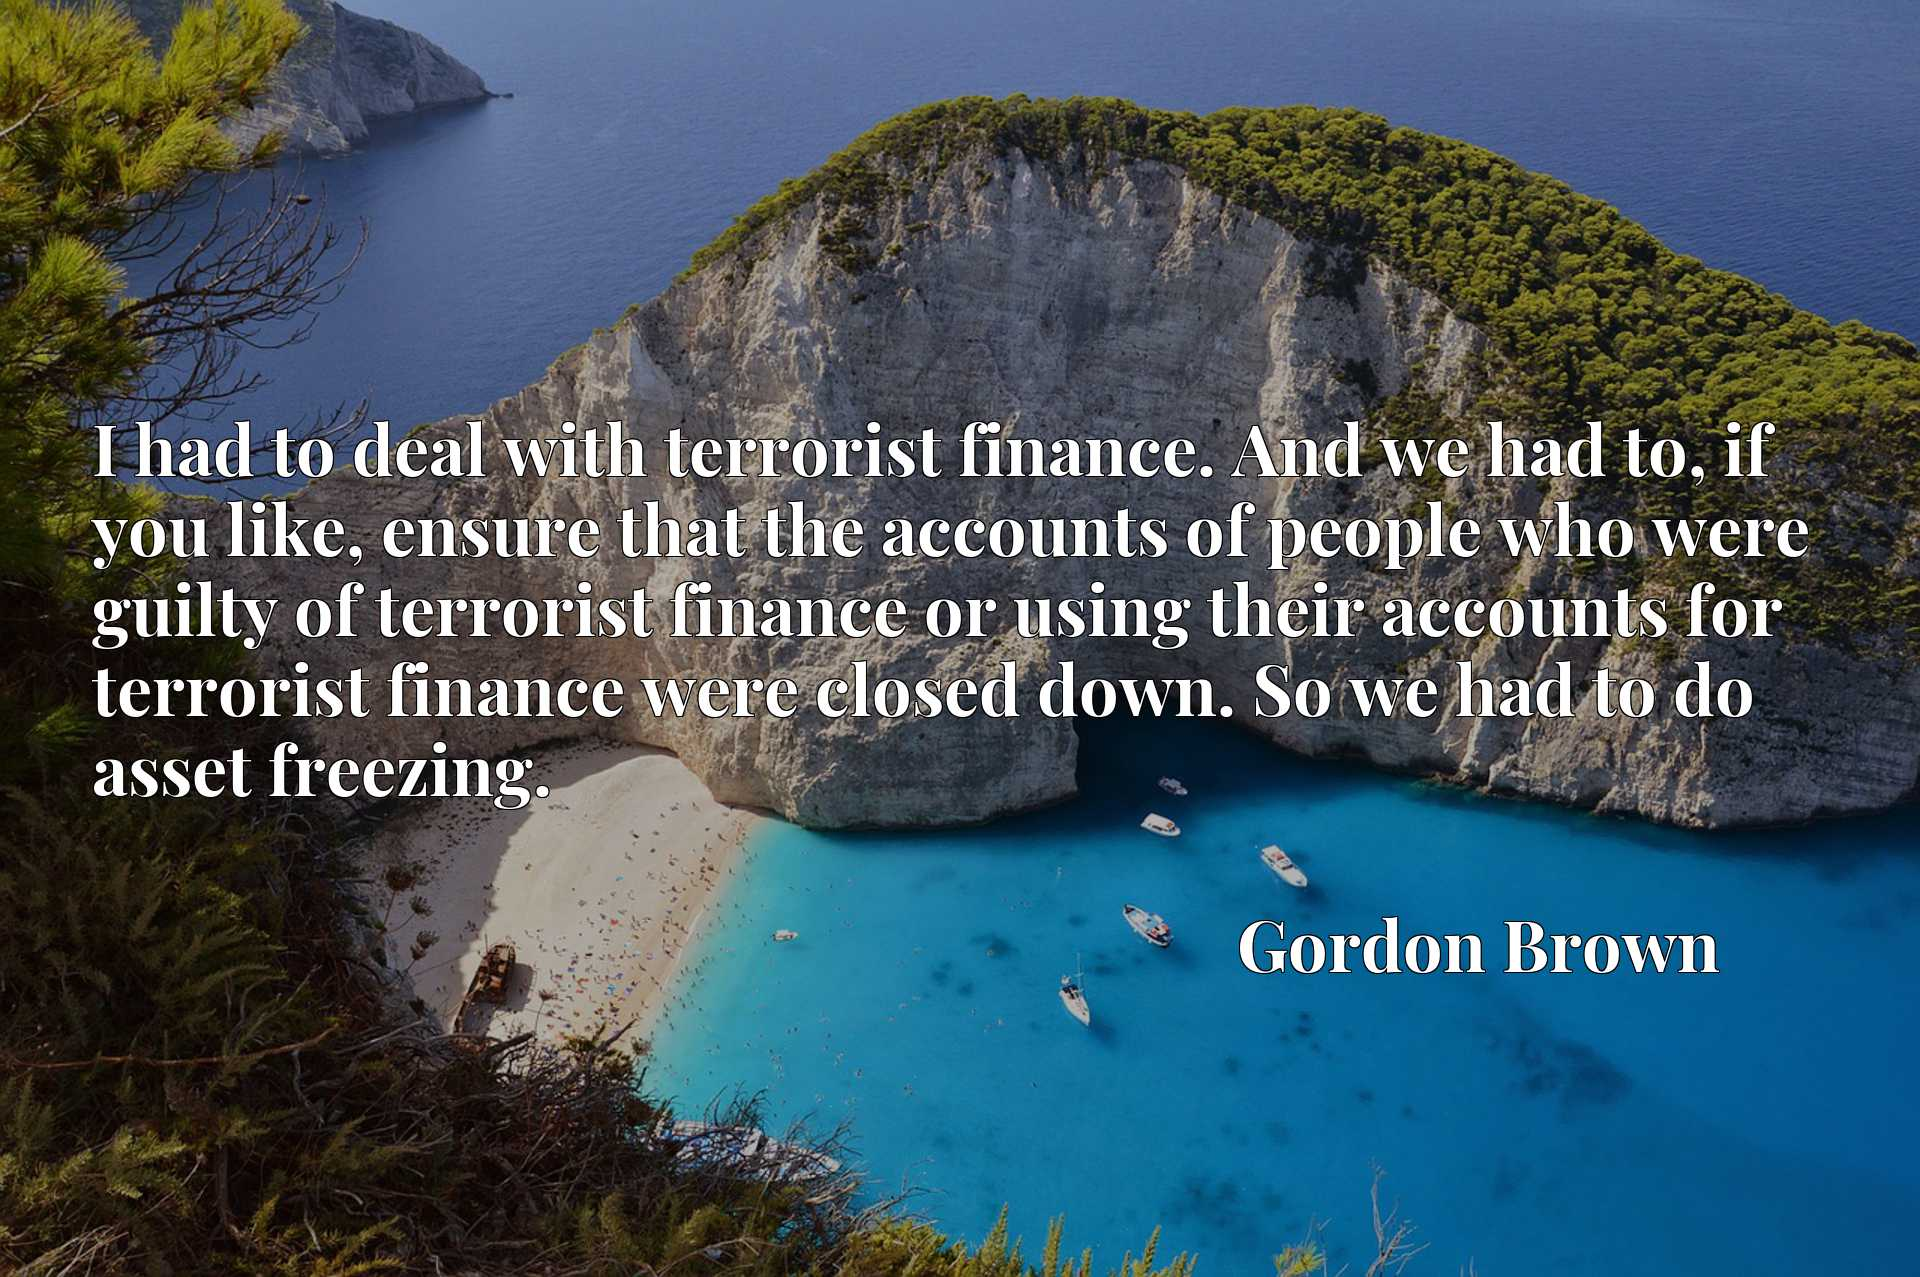 I had to deal with terrorist finance. And we had to, if you like, ensure that the accounts of people who were guilty of terrorist finance or using their accounts for terrorist finance were closed down. So we had to do asset freezing.